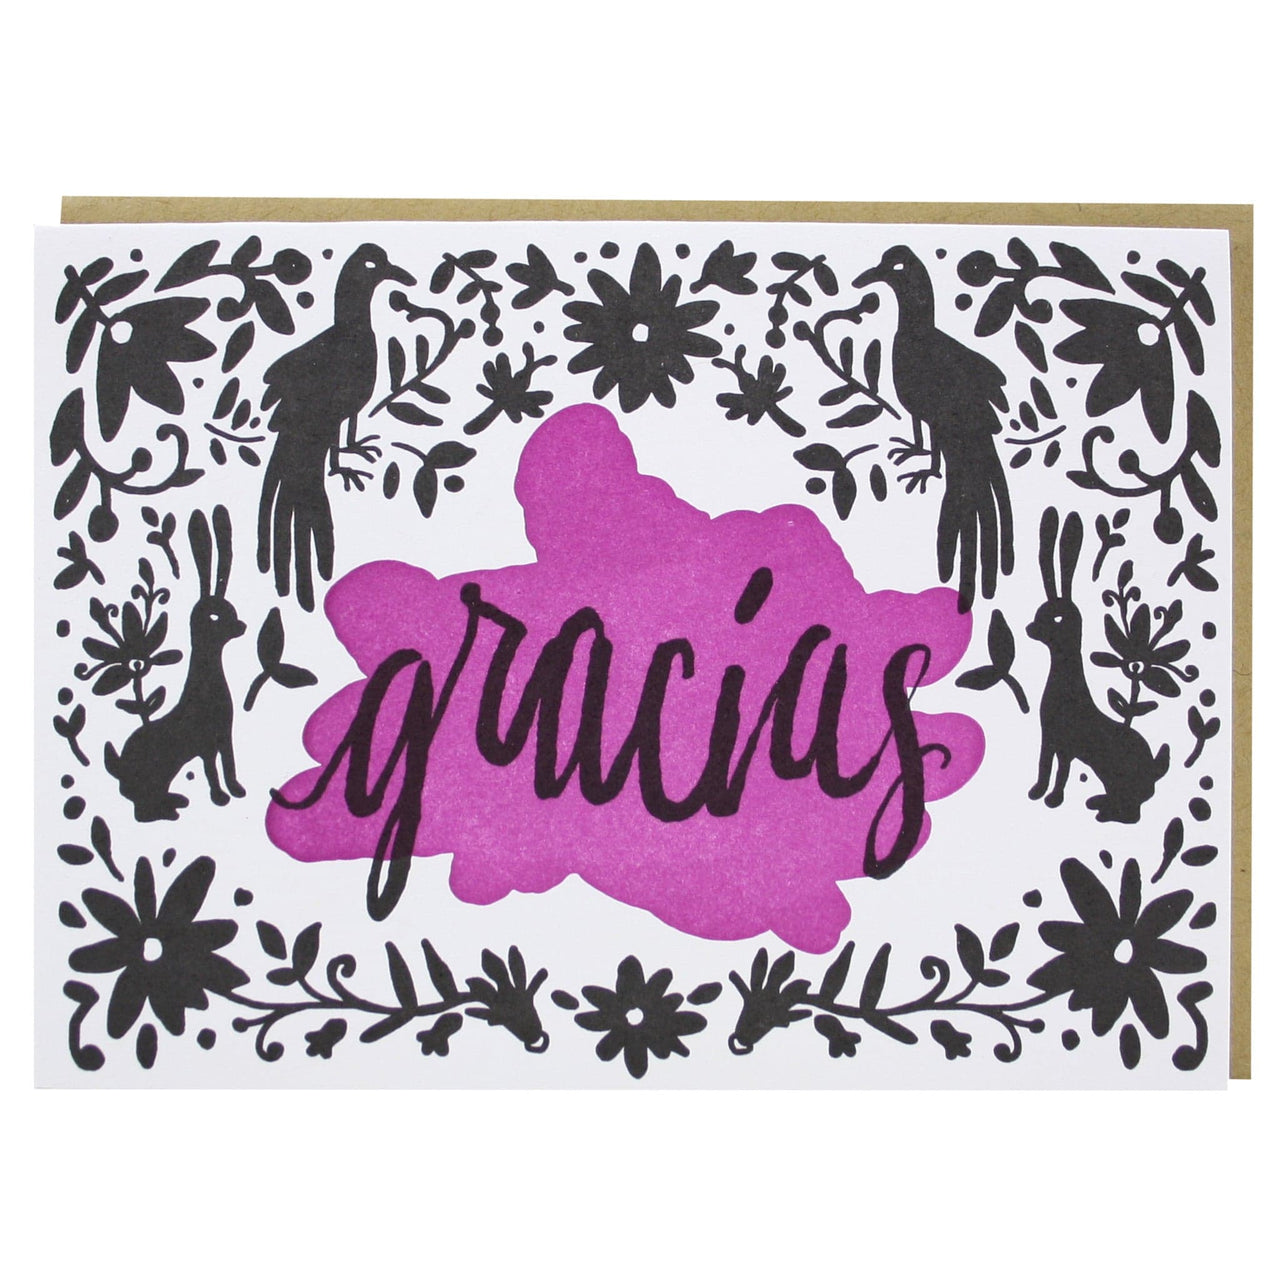 Gracias thank you notes multilingual thank you cards smudge ink gracias thank you card altavistaventures Image collections